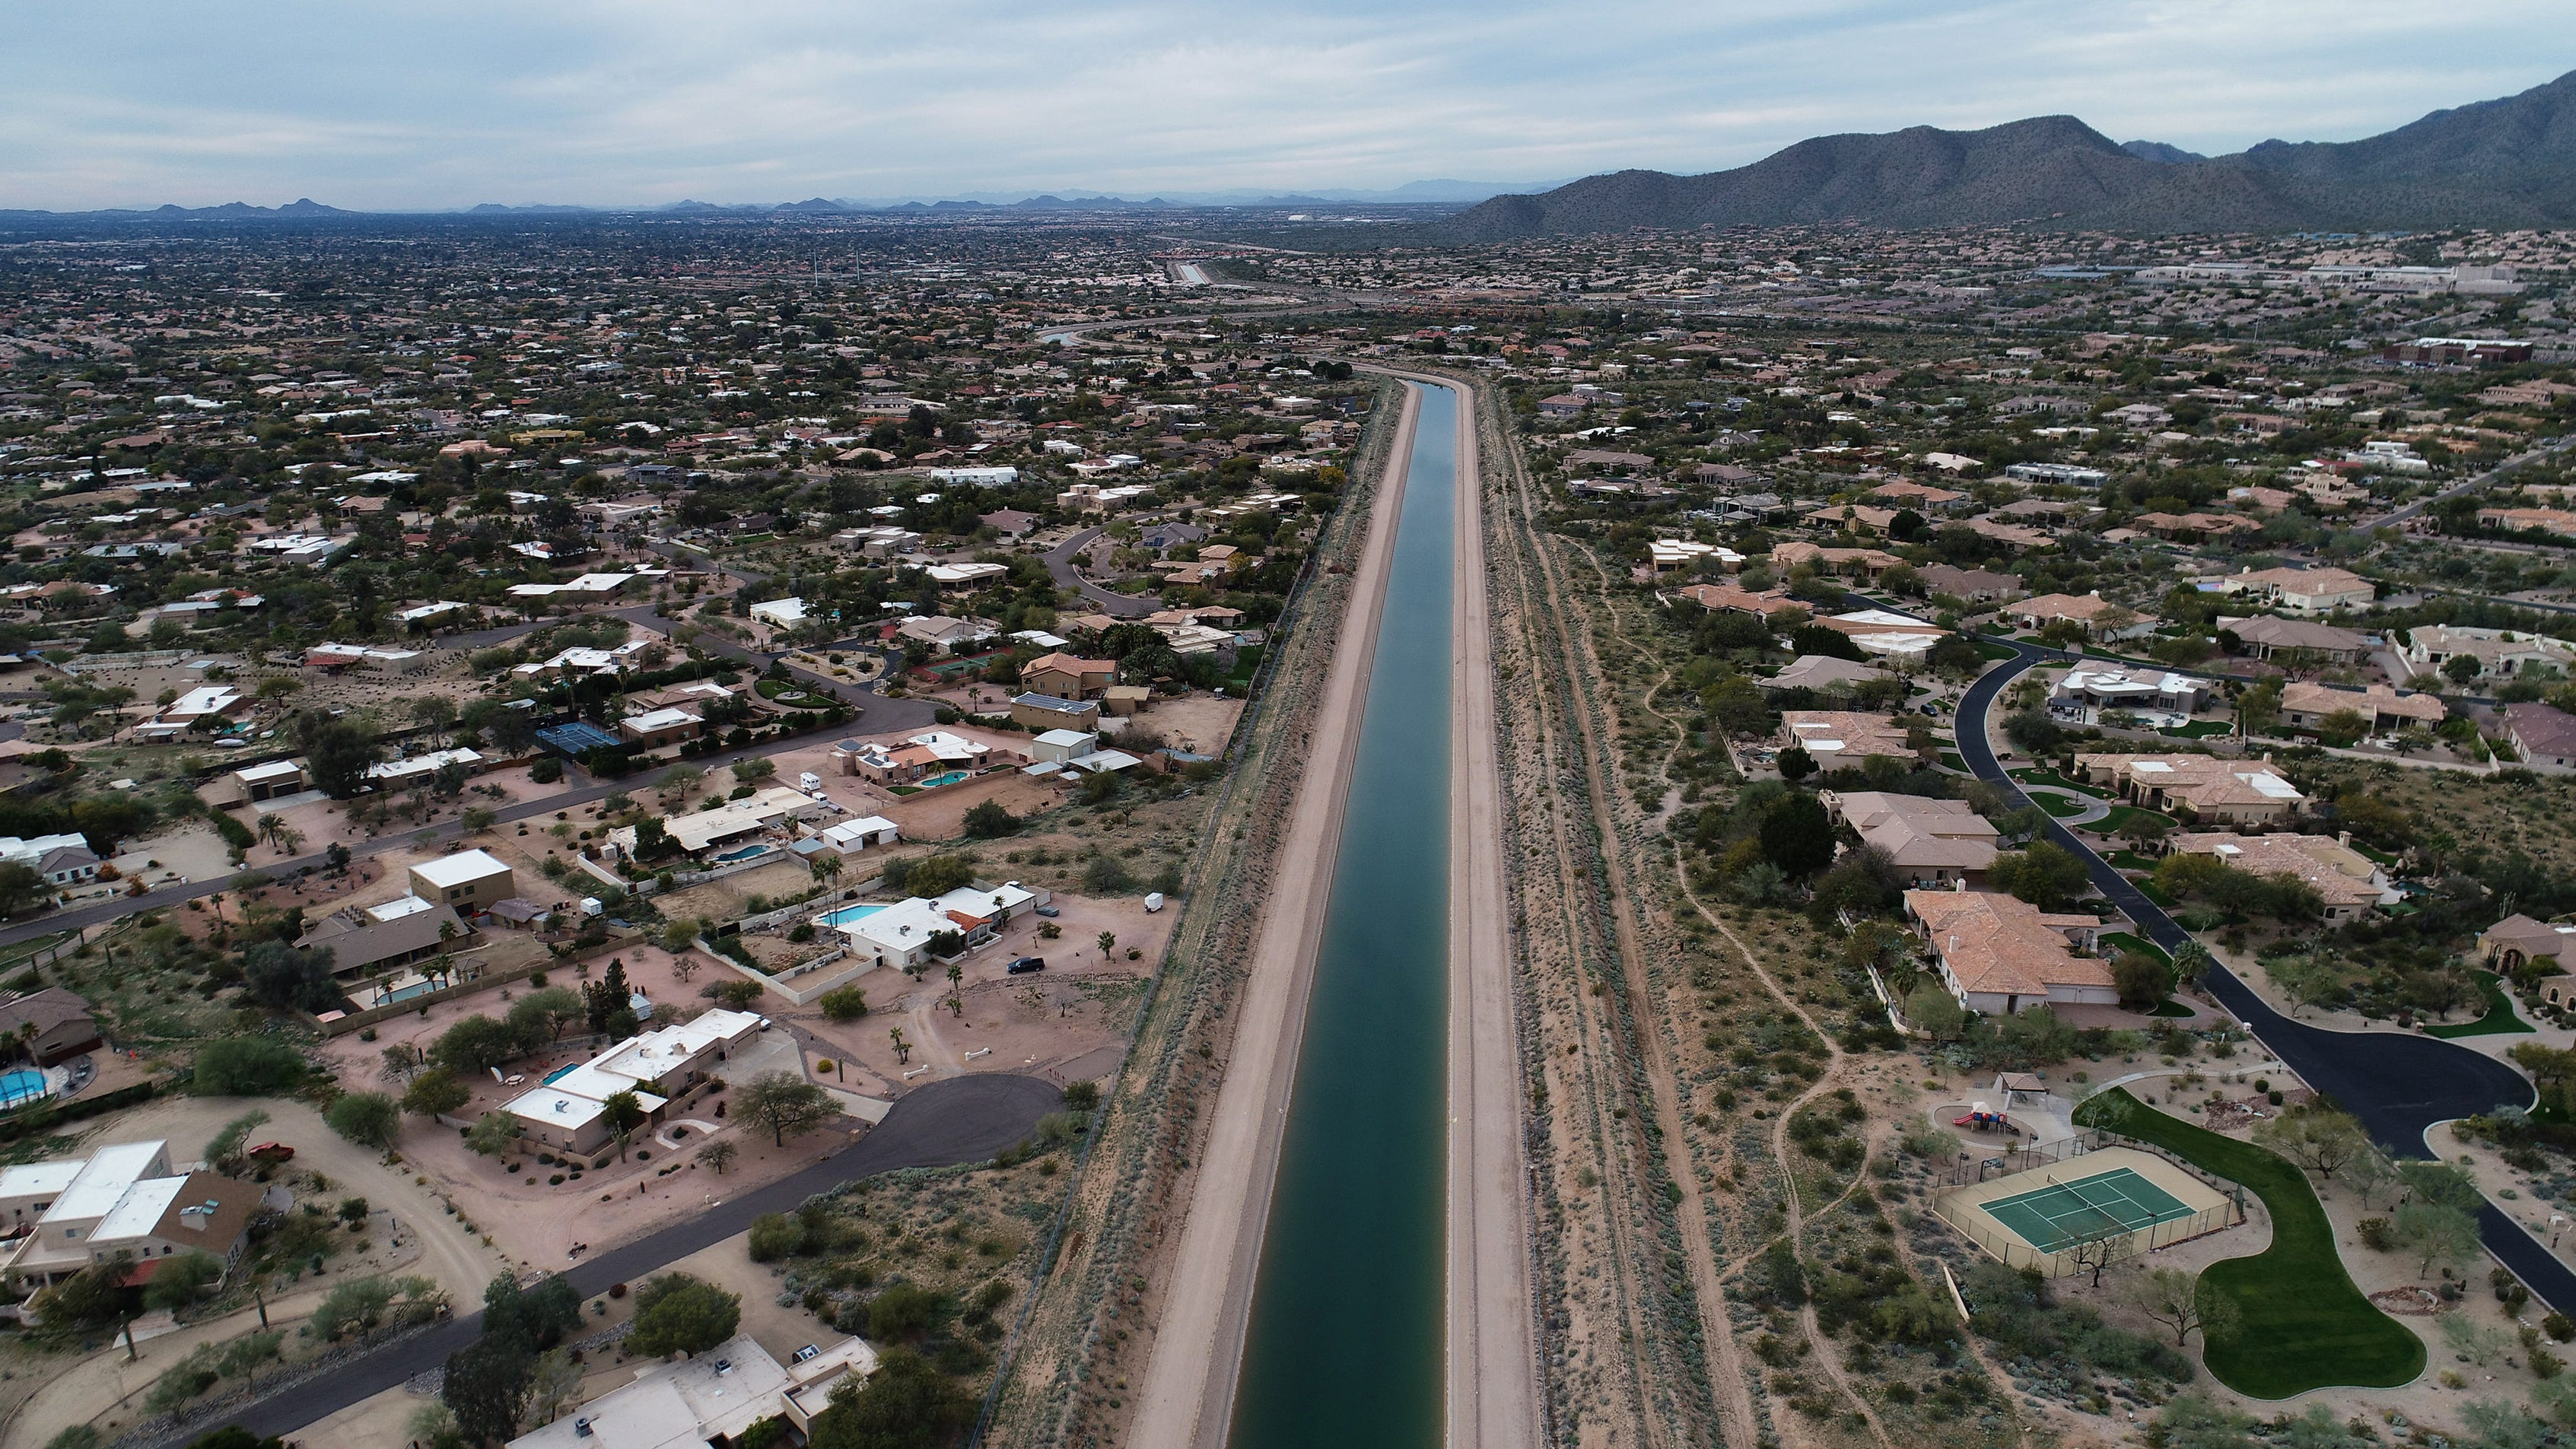 For decades, groundwater beneath Arizona's big cities has been spared. That's about to change